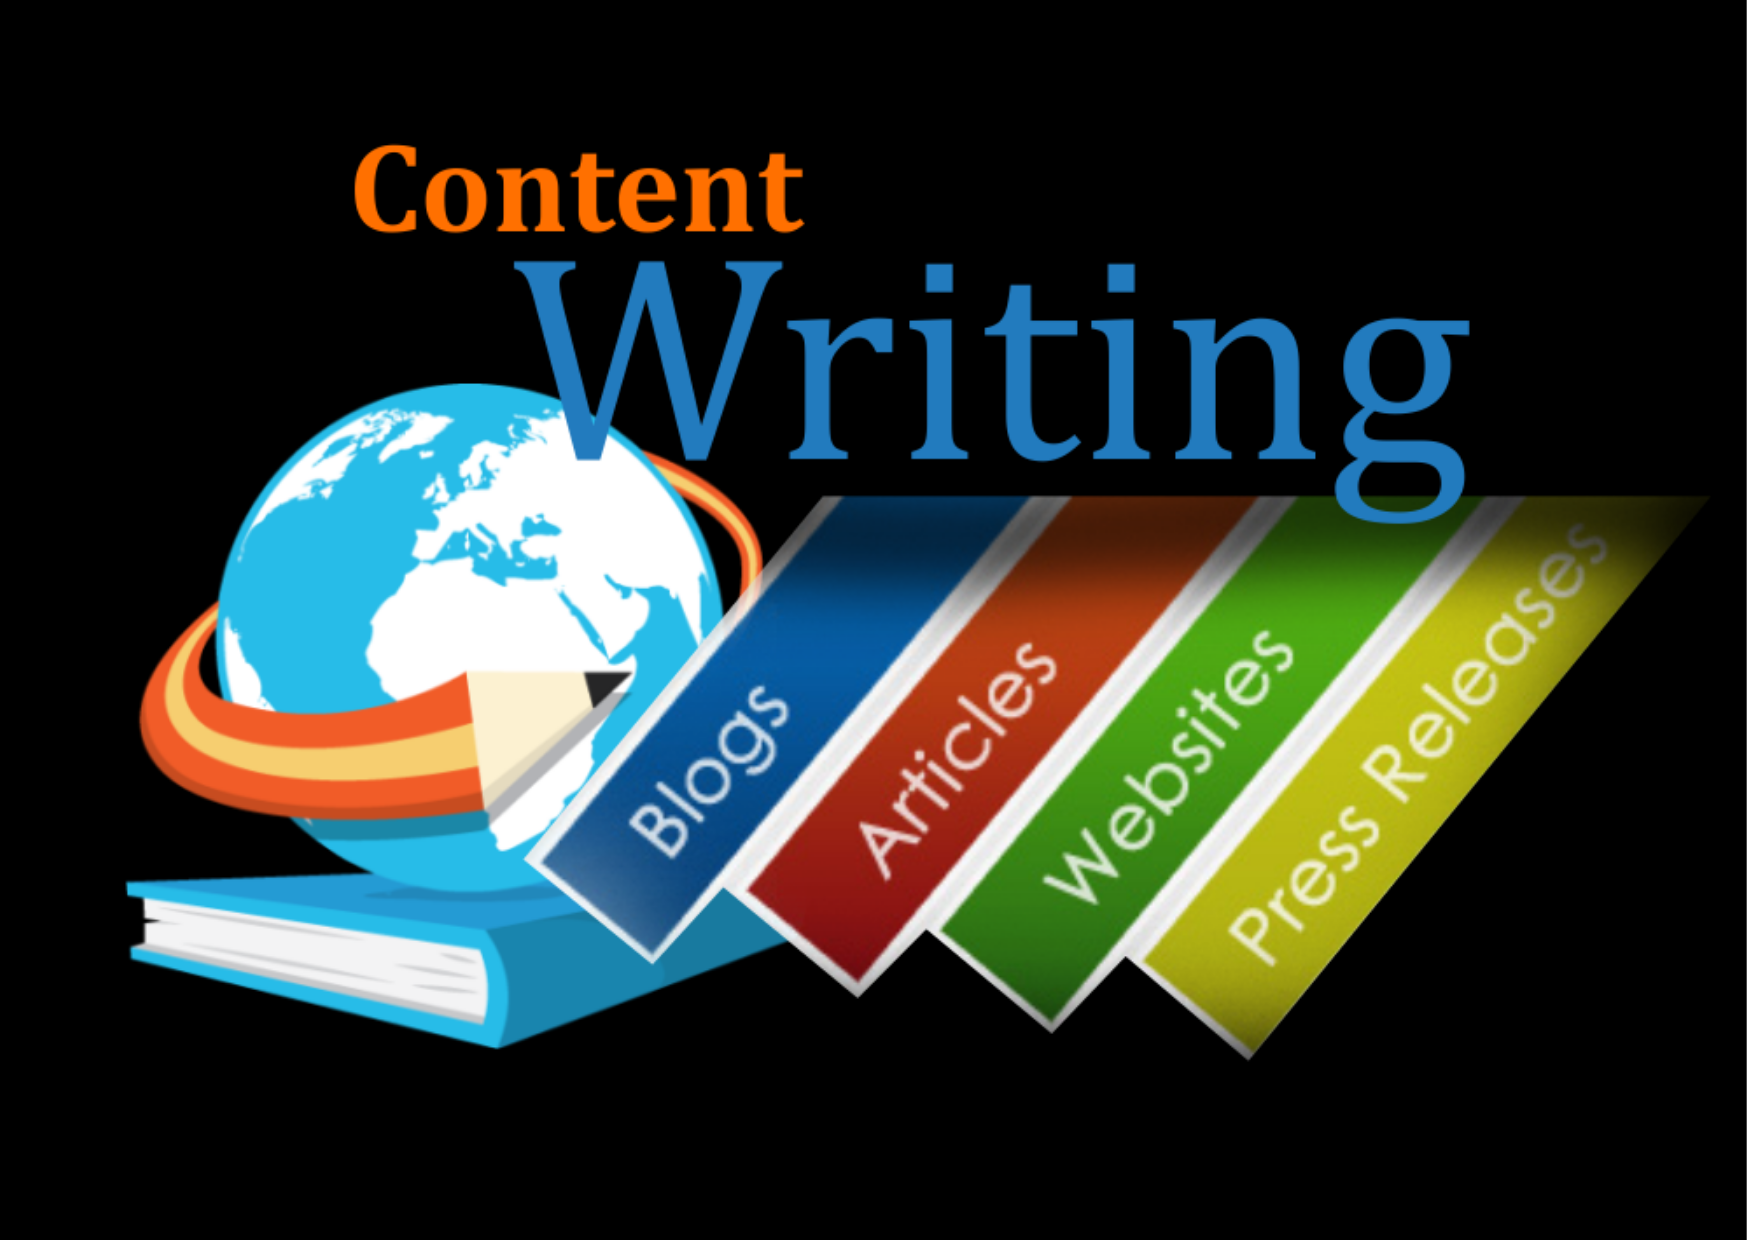 I will write a high quality SEO article or blog